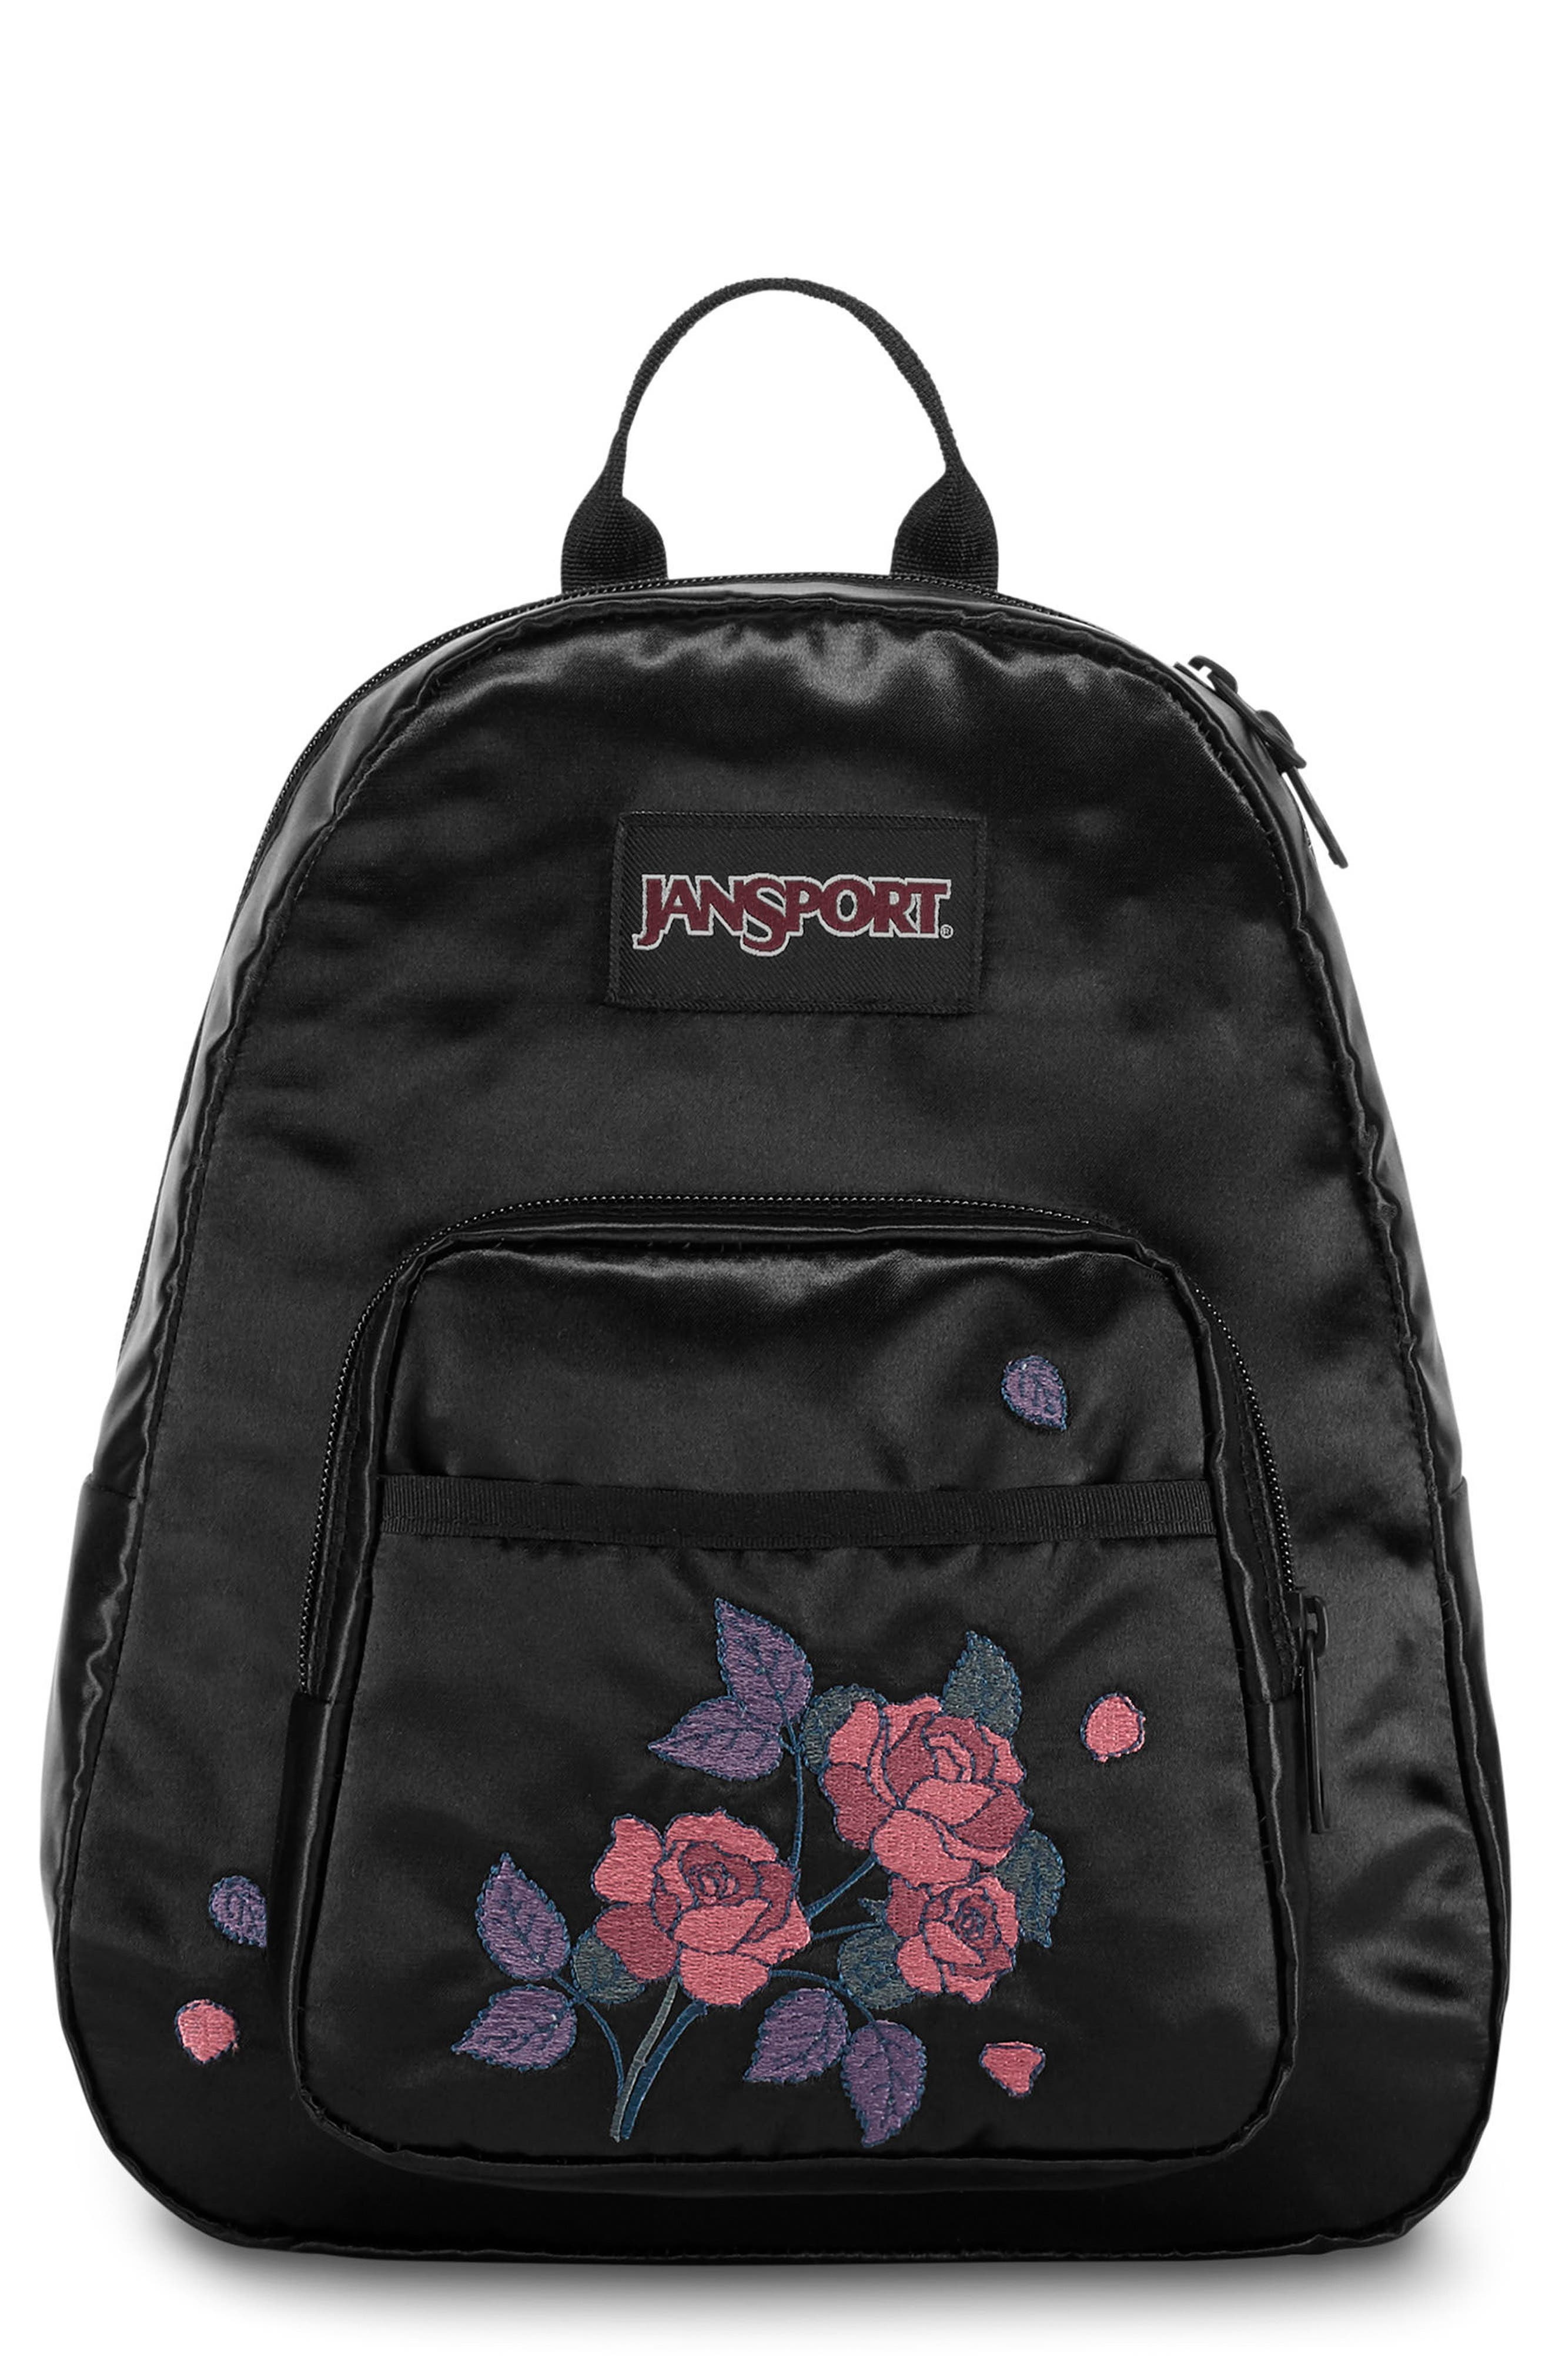 Half Pint FX Backpack,                         Main,                         color, Satin Rose